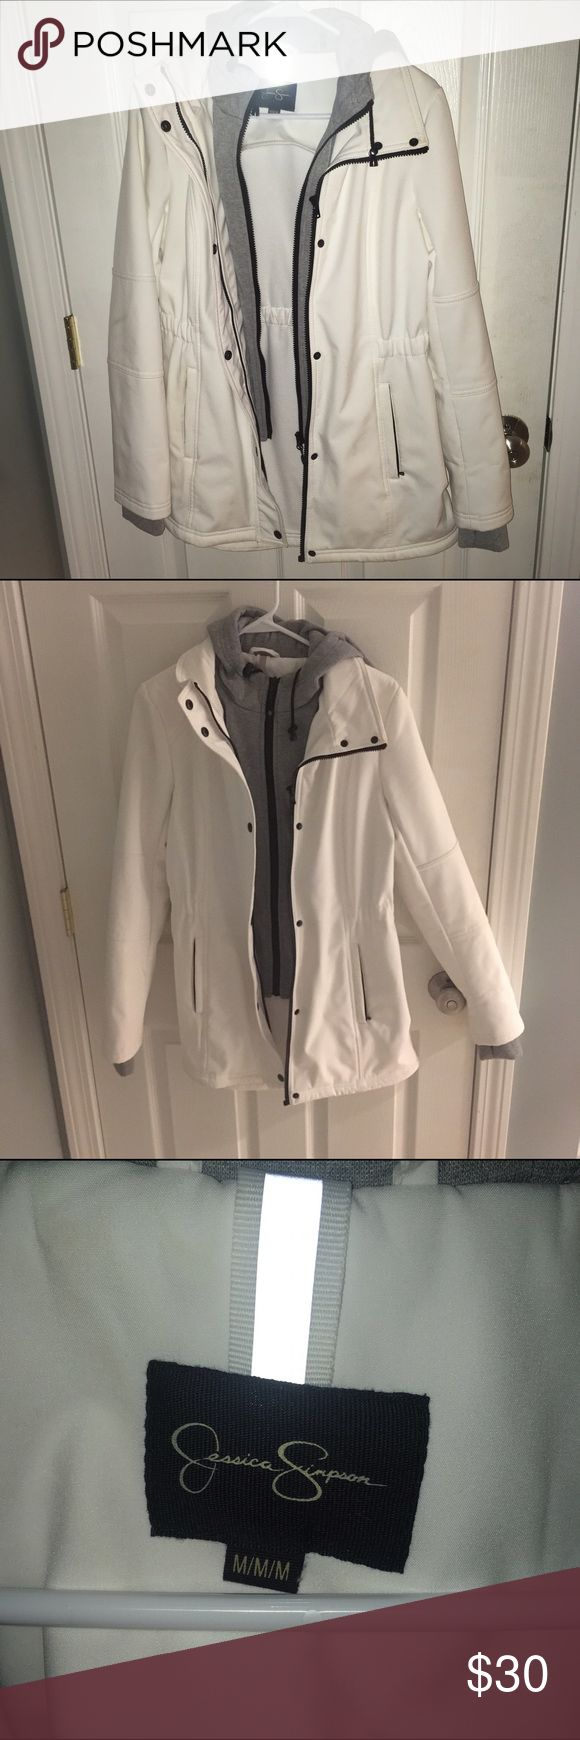 jessica simpson long jacket white jacket with grey hoodie attached! very comfy and super cute Jessica Simpson Jackets & Coats